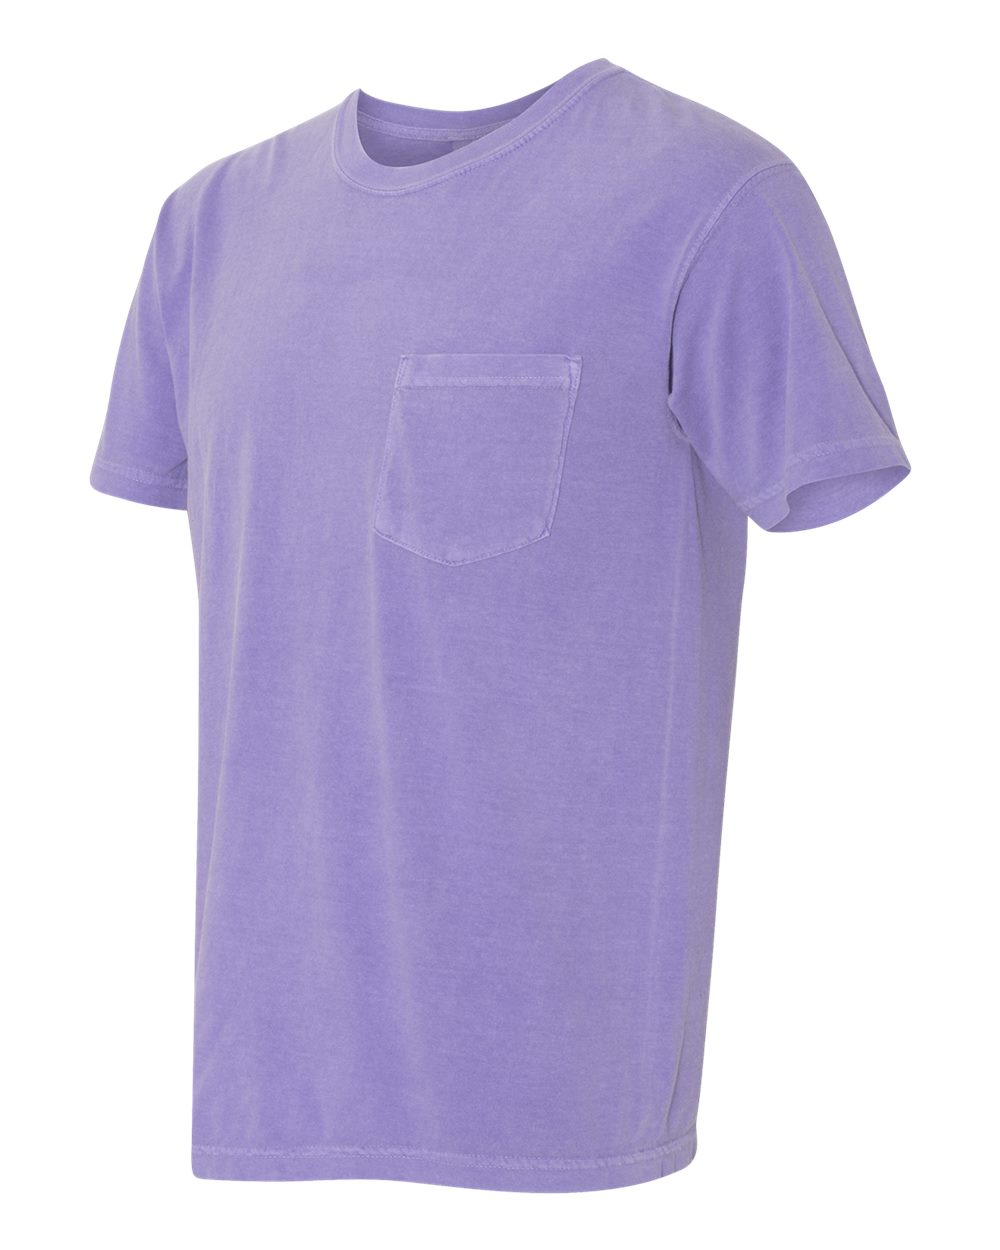 Comfort-Colors-Men-039-s-6-1-oz-Garment-Dyed-Pocket-T-Shirt-6030CC-S-3XL thumbnail 75